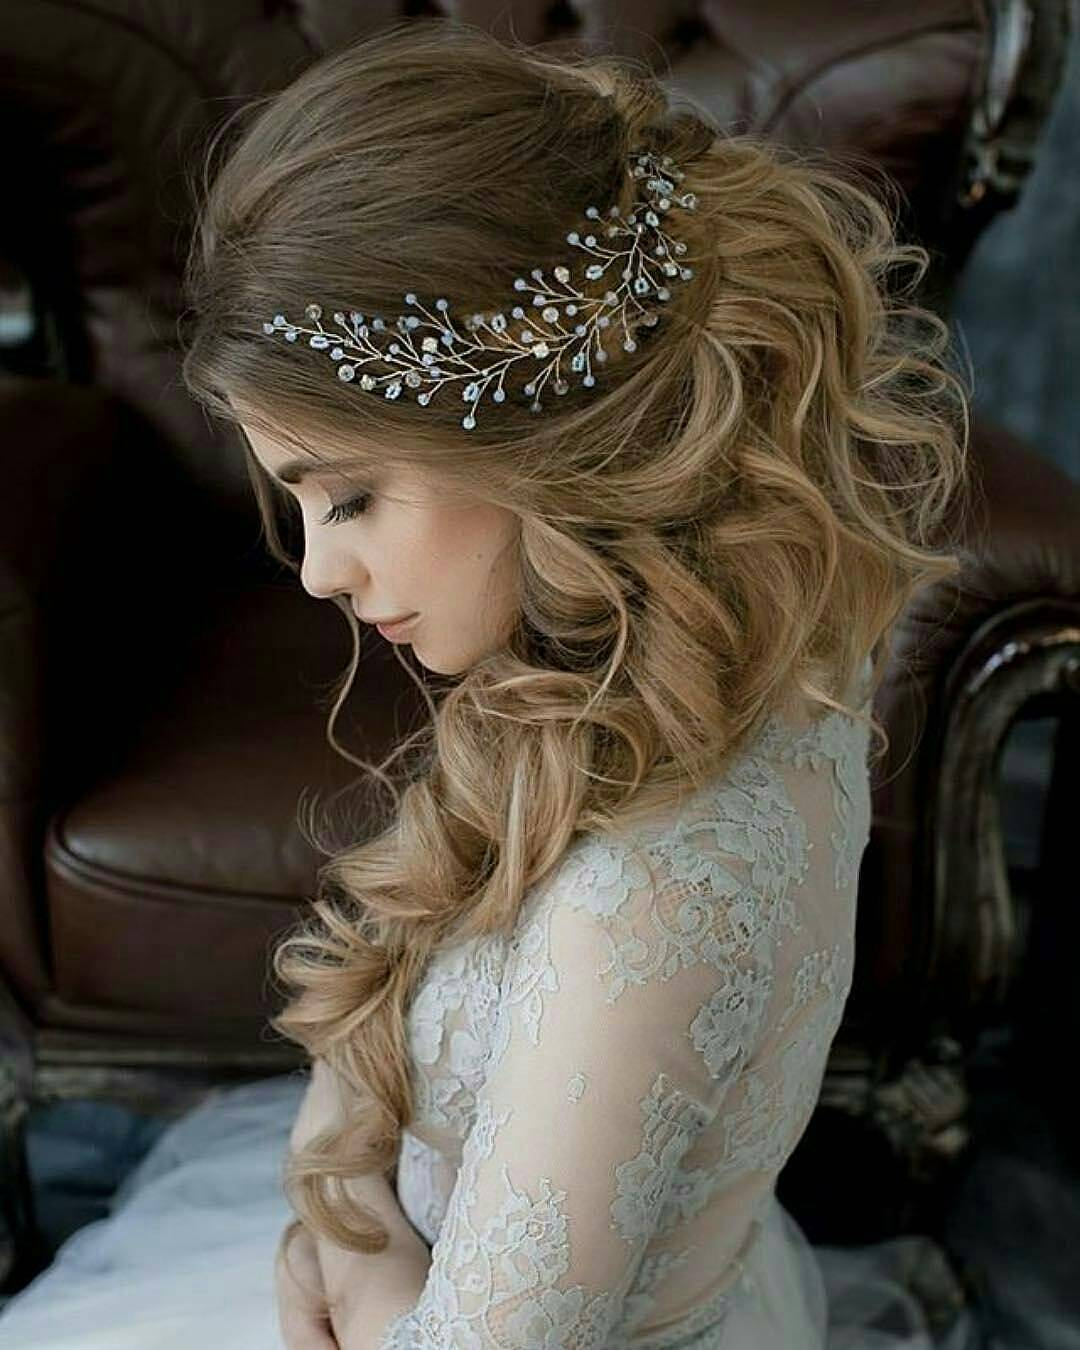 10 lavish wedding hairstyles for long hair wedding hairstyle beautiful wedding hairstyles for long hair bride hairstyle designs junglespirit Choice Image